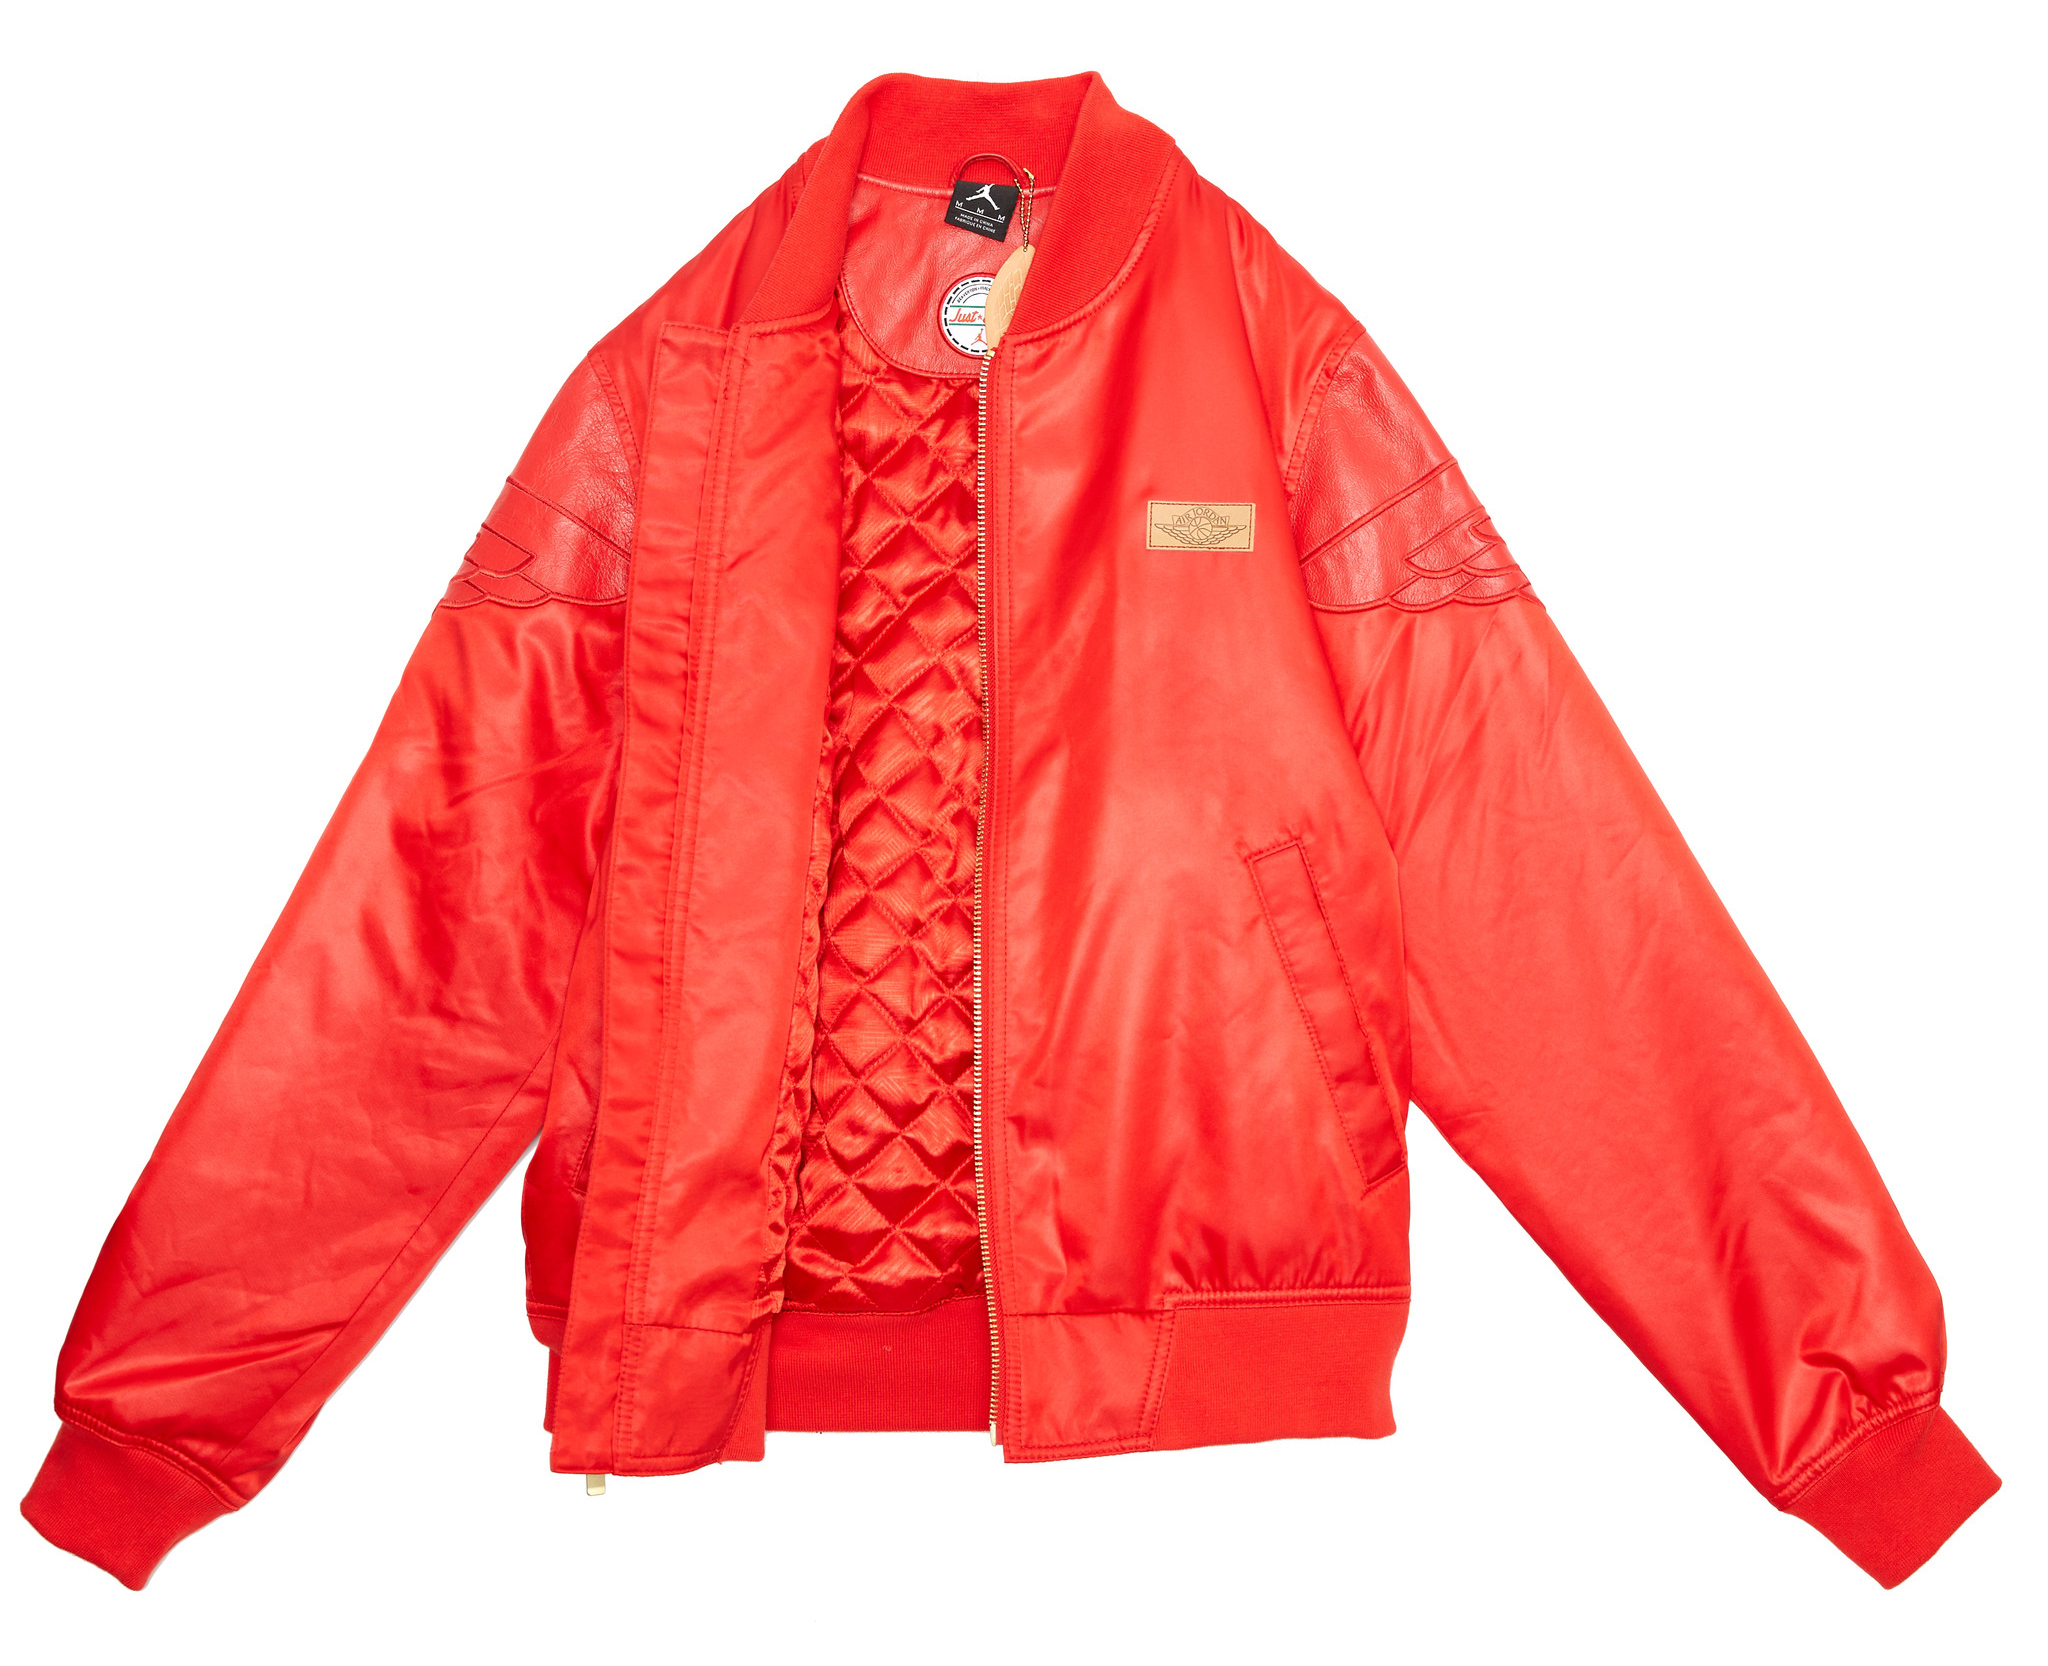 912949b75213 Here's The Jacket To Match Your Just Don x Air Jordan 2 Pack ...